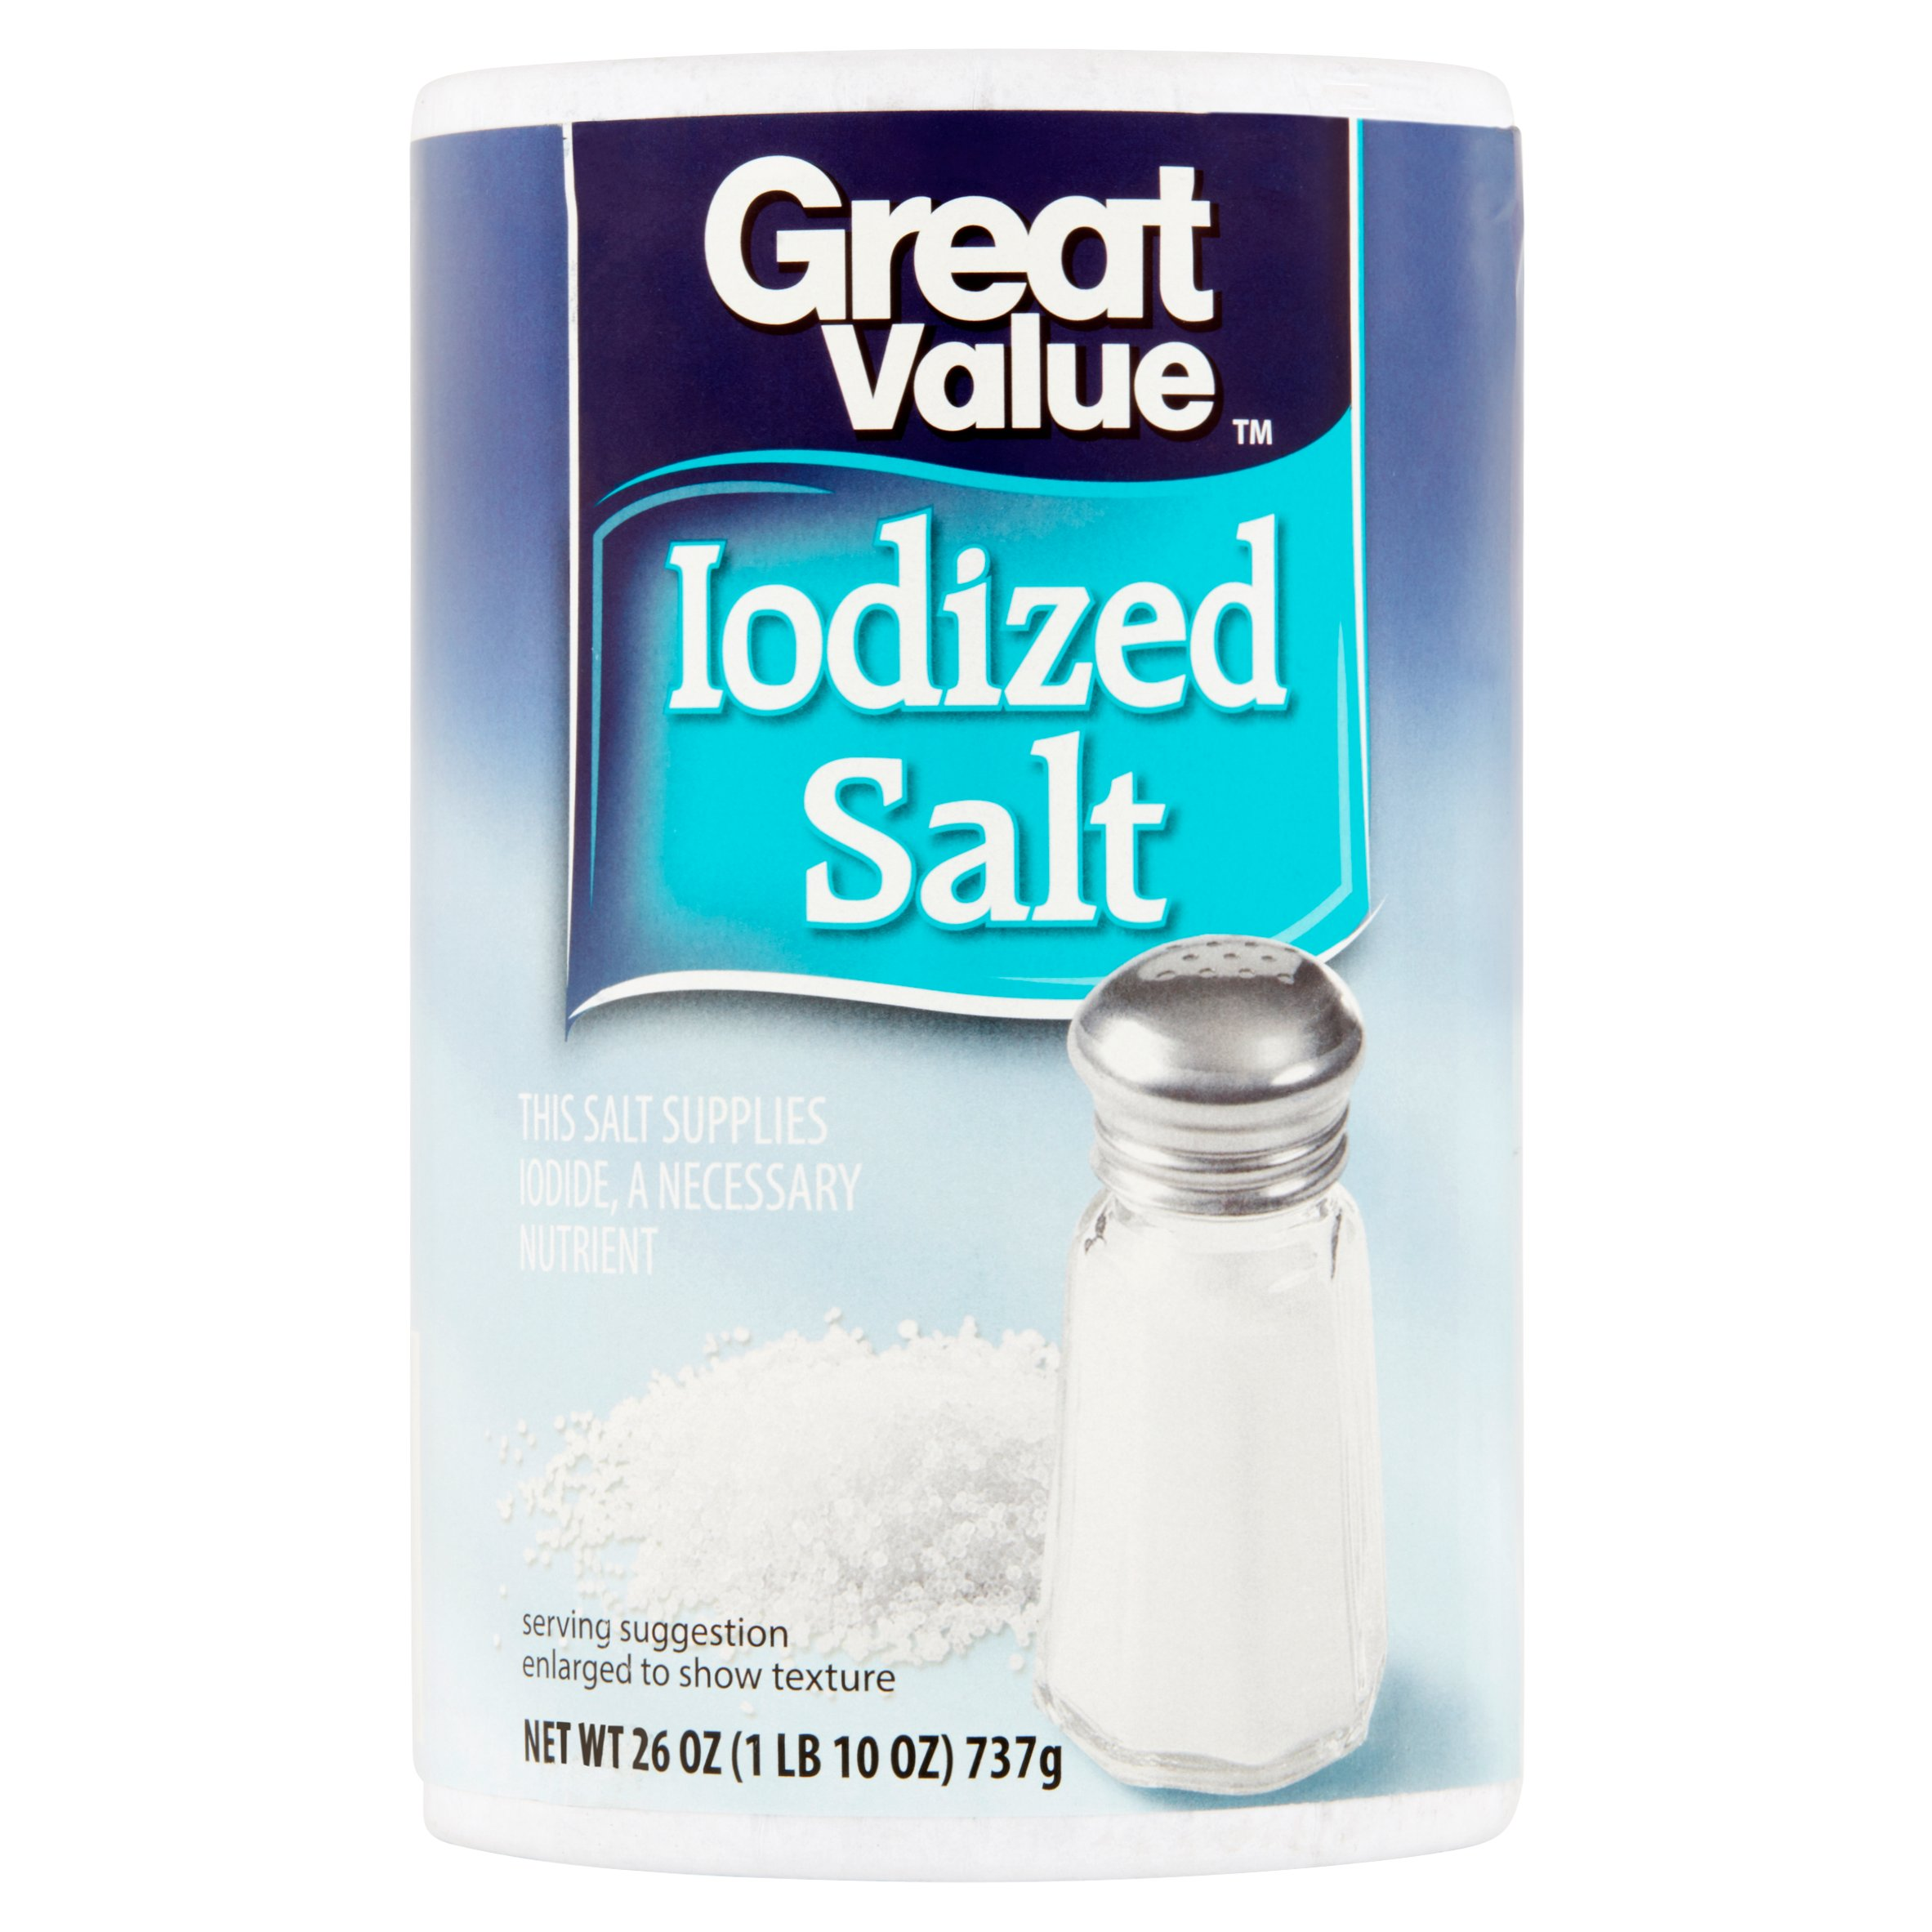 Great Value Iodized Salt, 26 oz by Wal-Mart Stores, Inc.